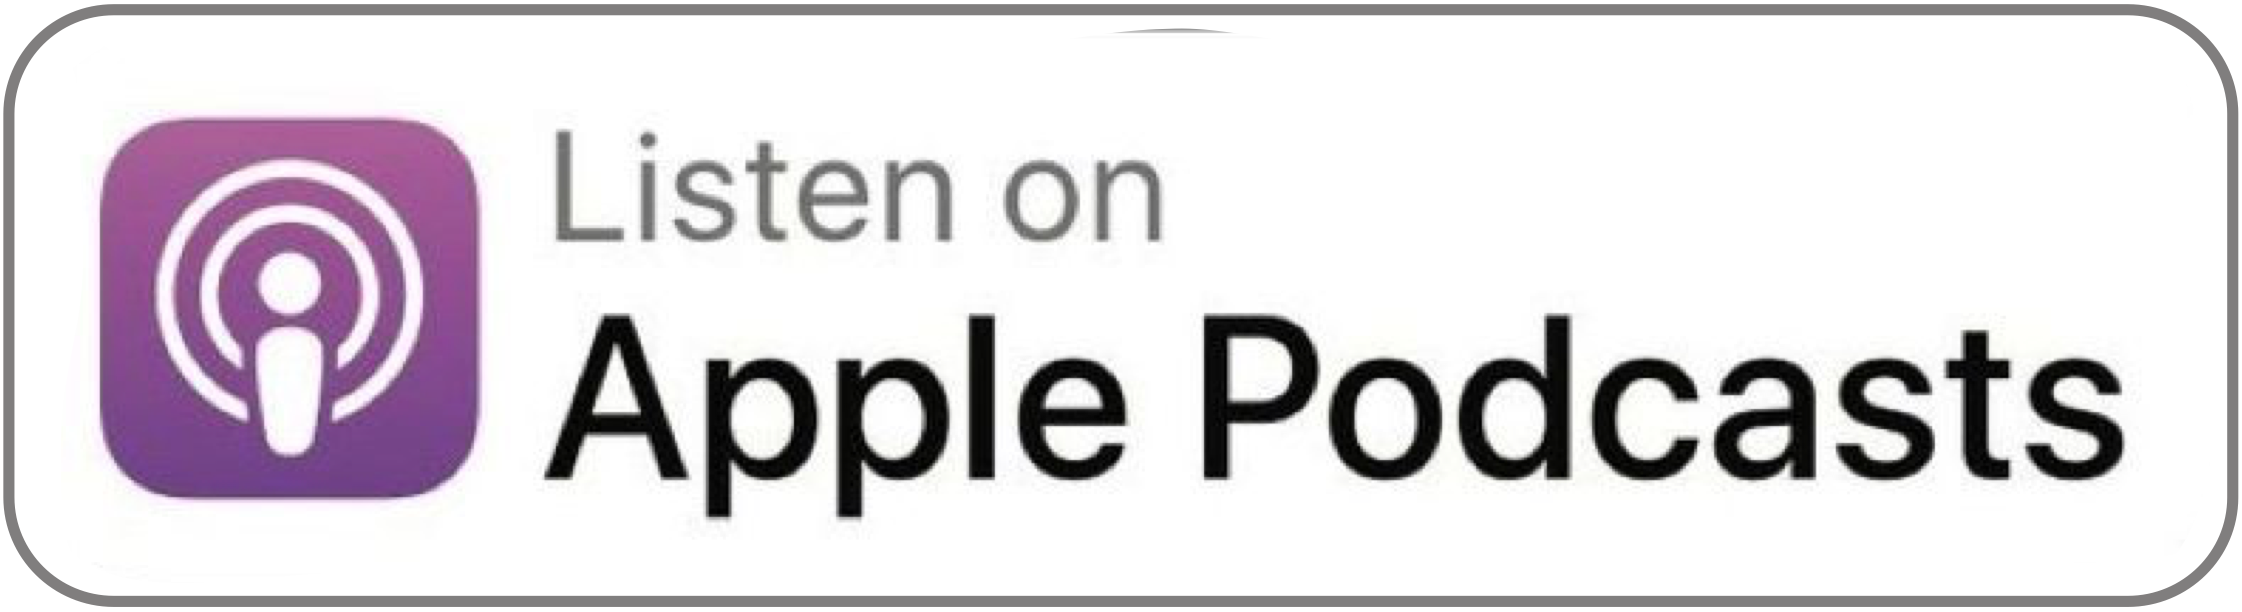 Apple Podcast PNG - 97419